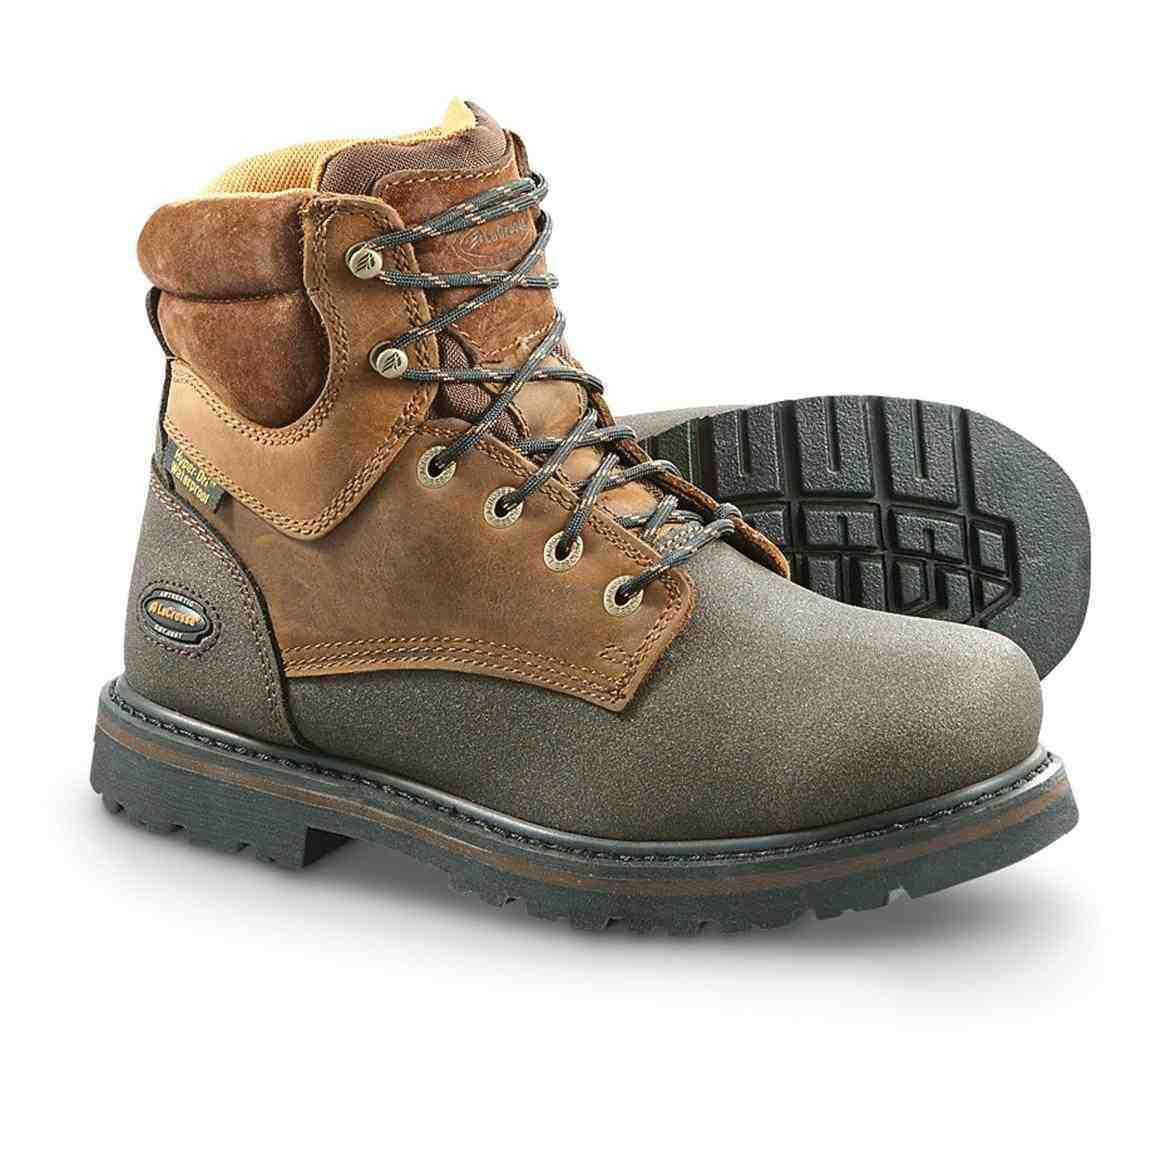 Lacrosse Work Boots | Boots, Work boots